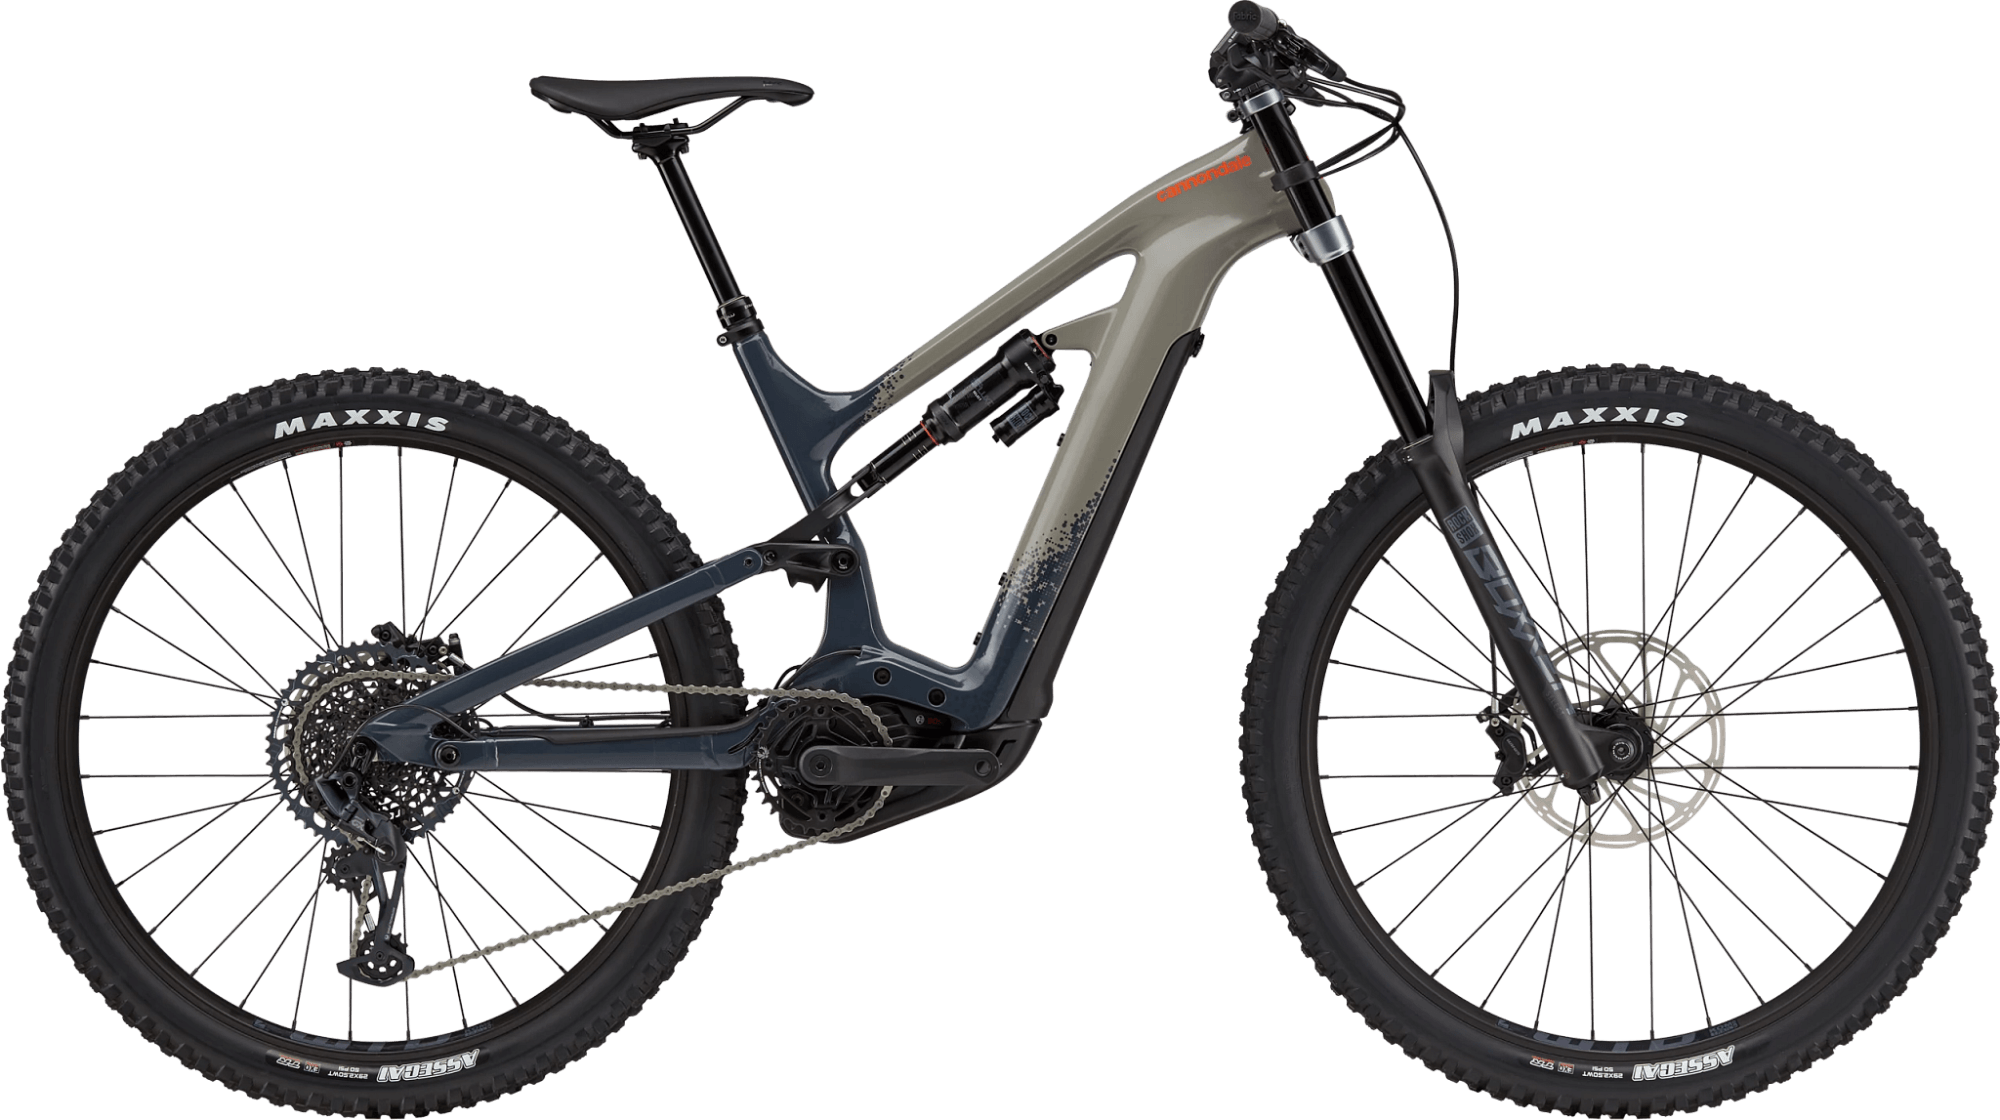 Cannondale Moterra Neo Carbon SE eBike 2021 - Cycles Galleria Melbourne